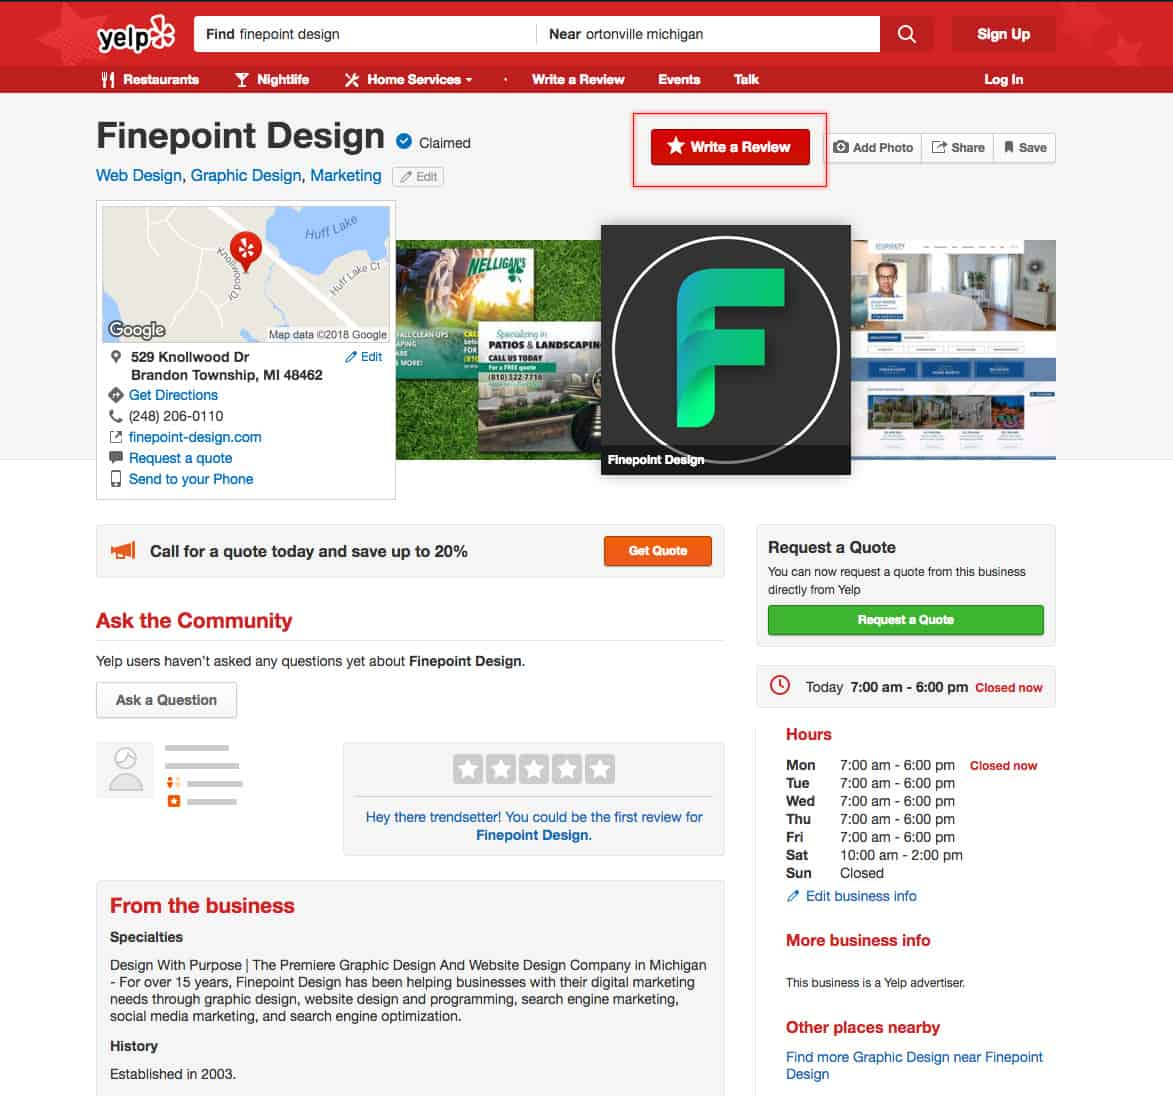 Finepoint Design Yelp Review